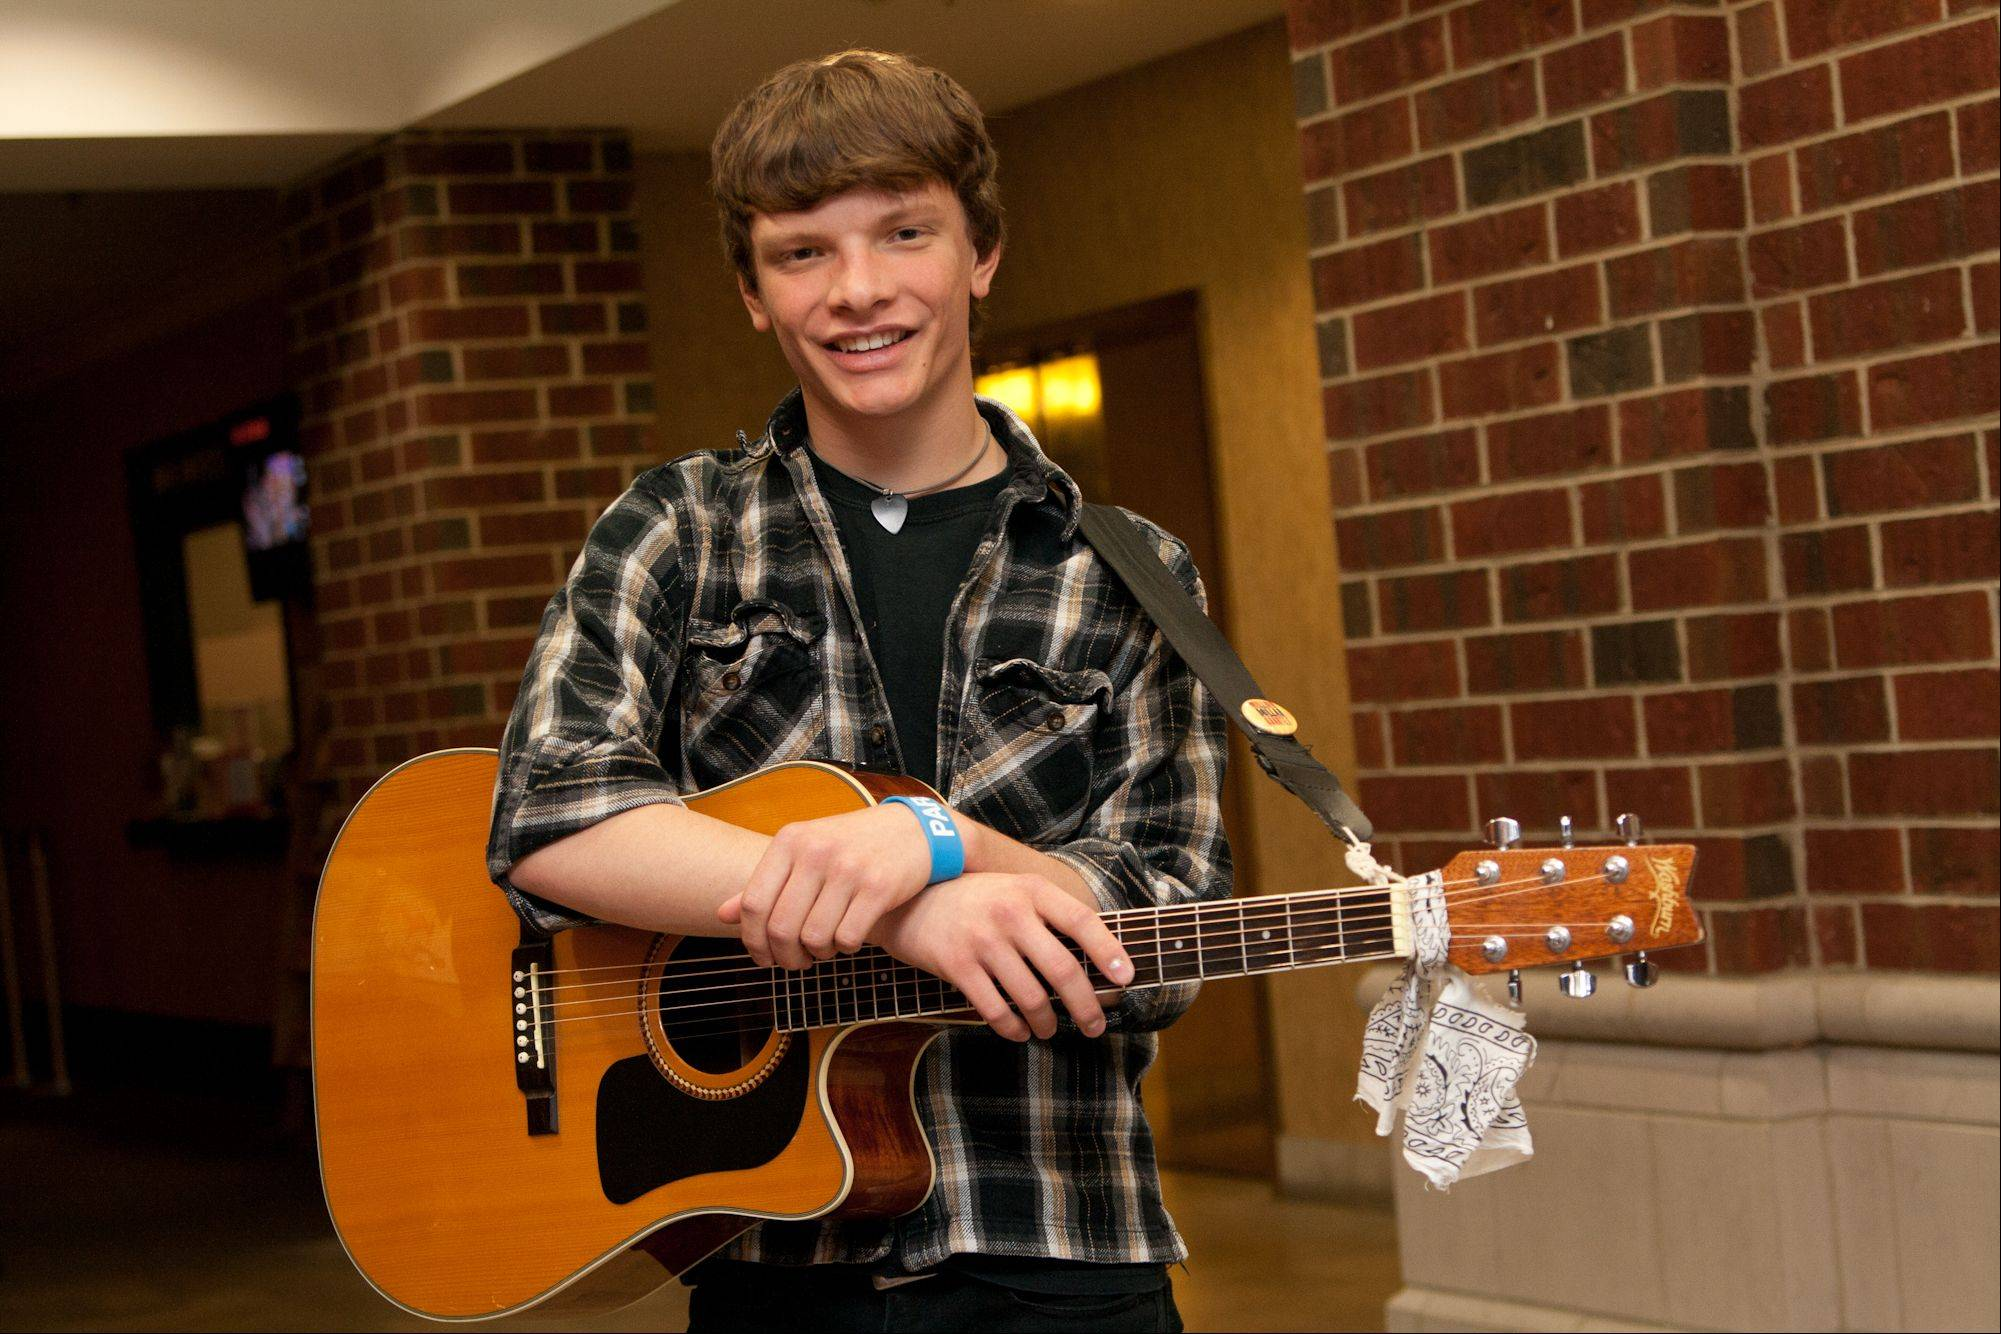 Suburban Chicago's Got Talent top 10 finalist James Woodraska (aka Woody James) of Millington.